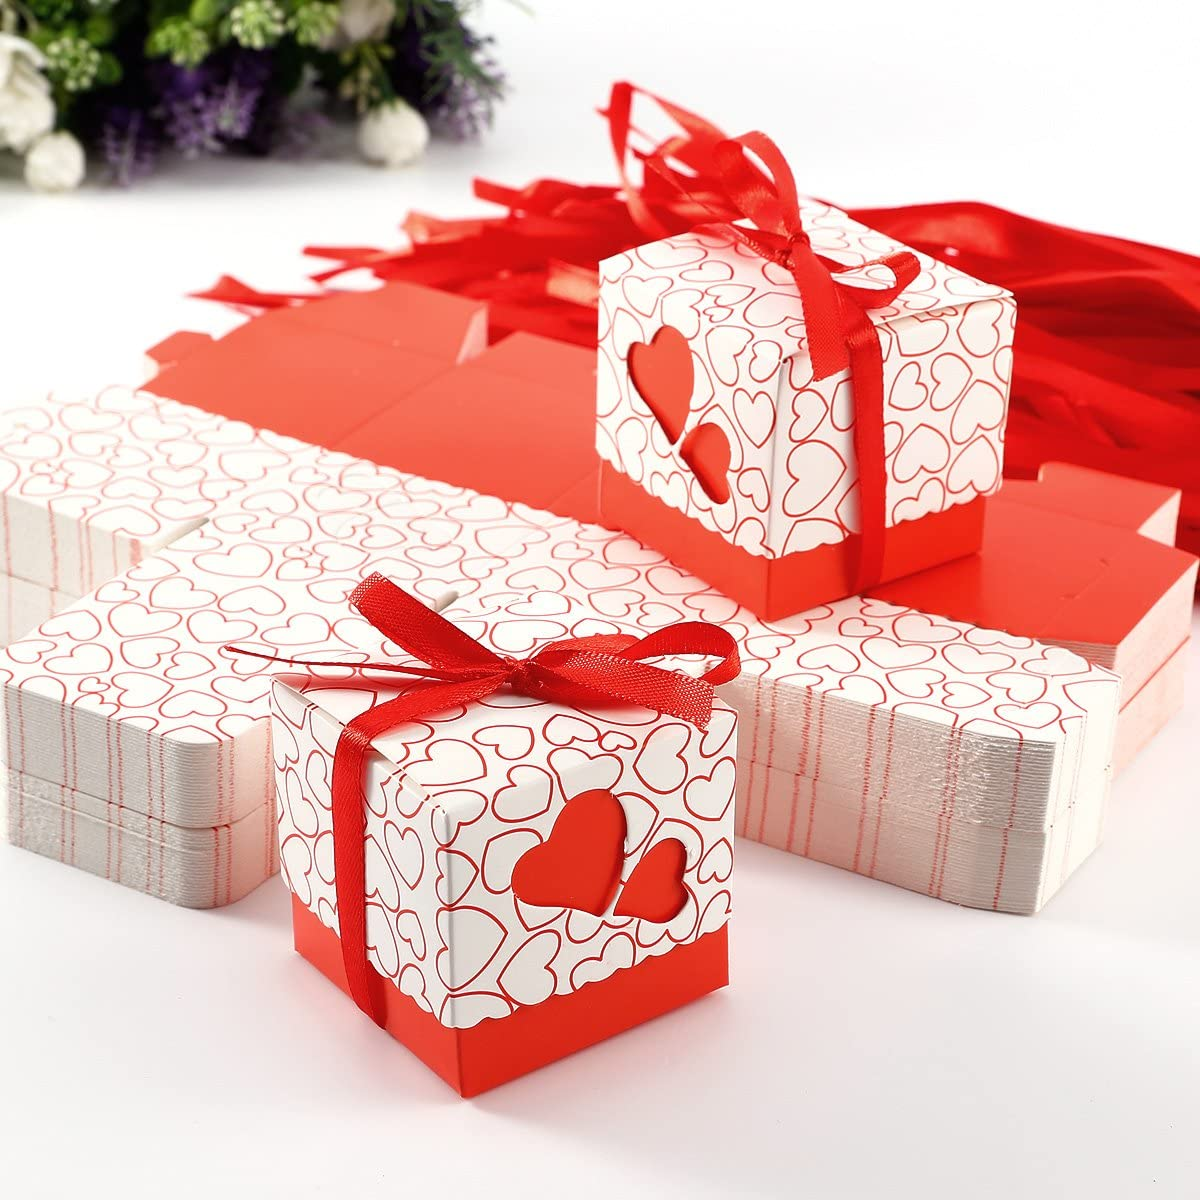 Pack of 100 Heart Favour Boxes Wedding Sweet Bags Various Colors Red